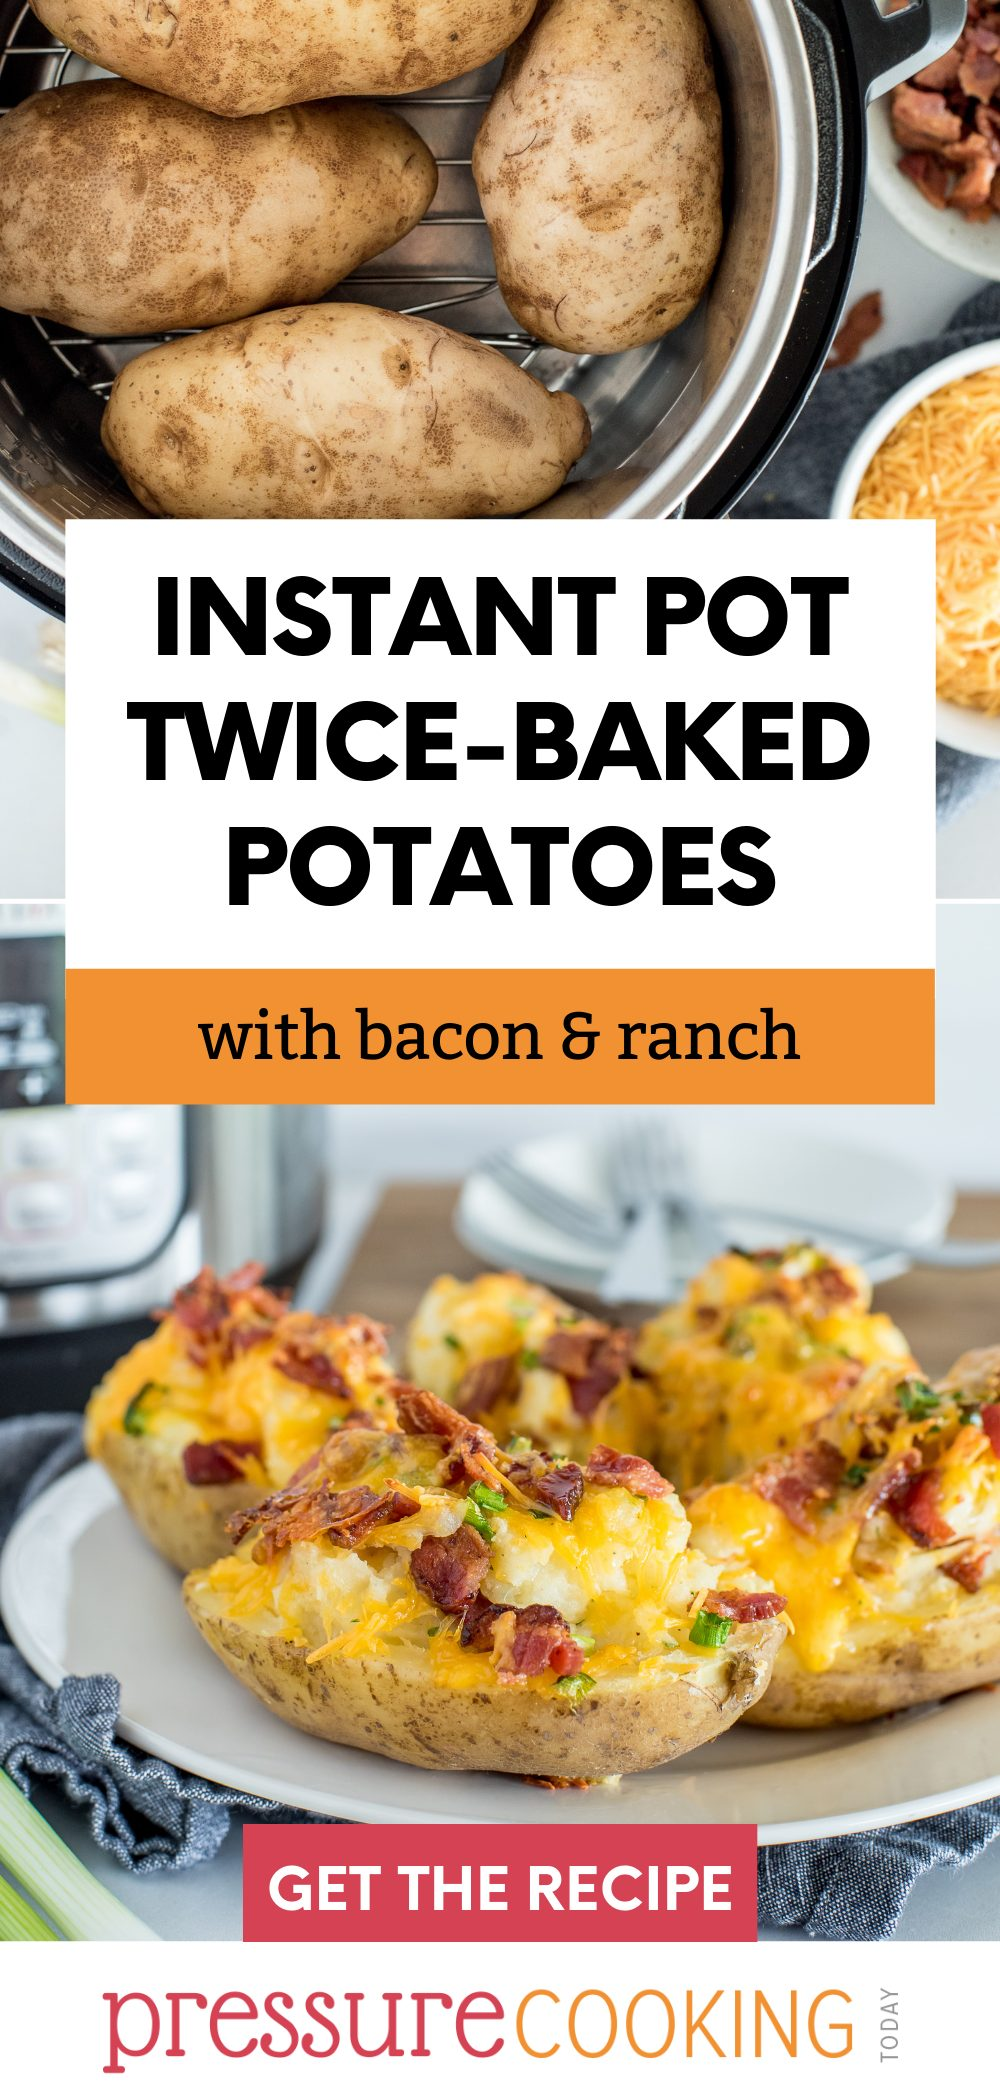 """""""Bake"""" your potatoes in your Instant Pot, then halve and smother them with ranch seasoning, cheese, and bacon, to make the BEST twice-baked potatoes ever. via @PressureCook2da"""